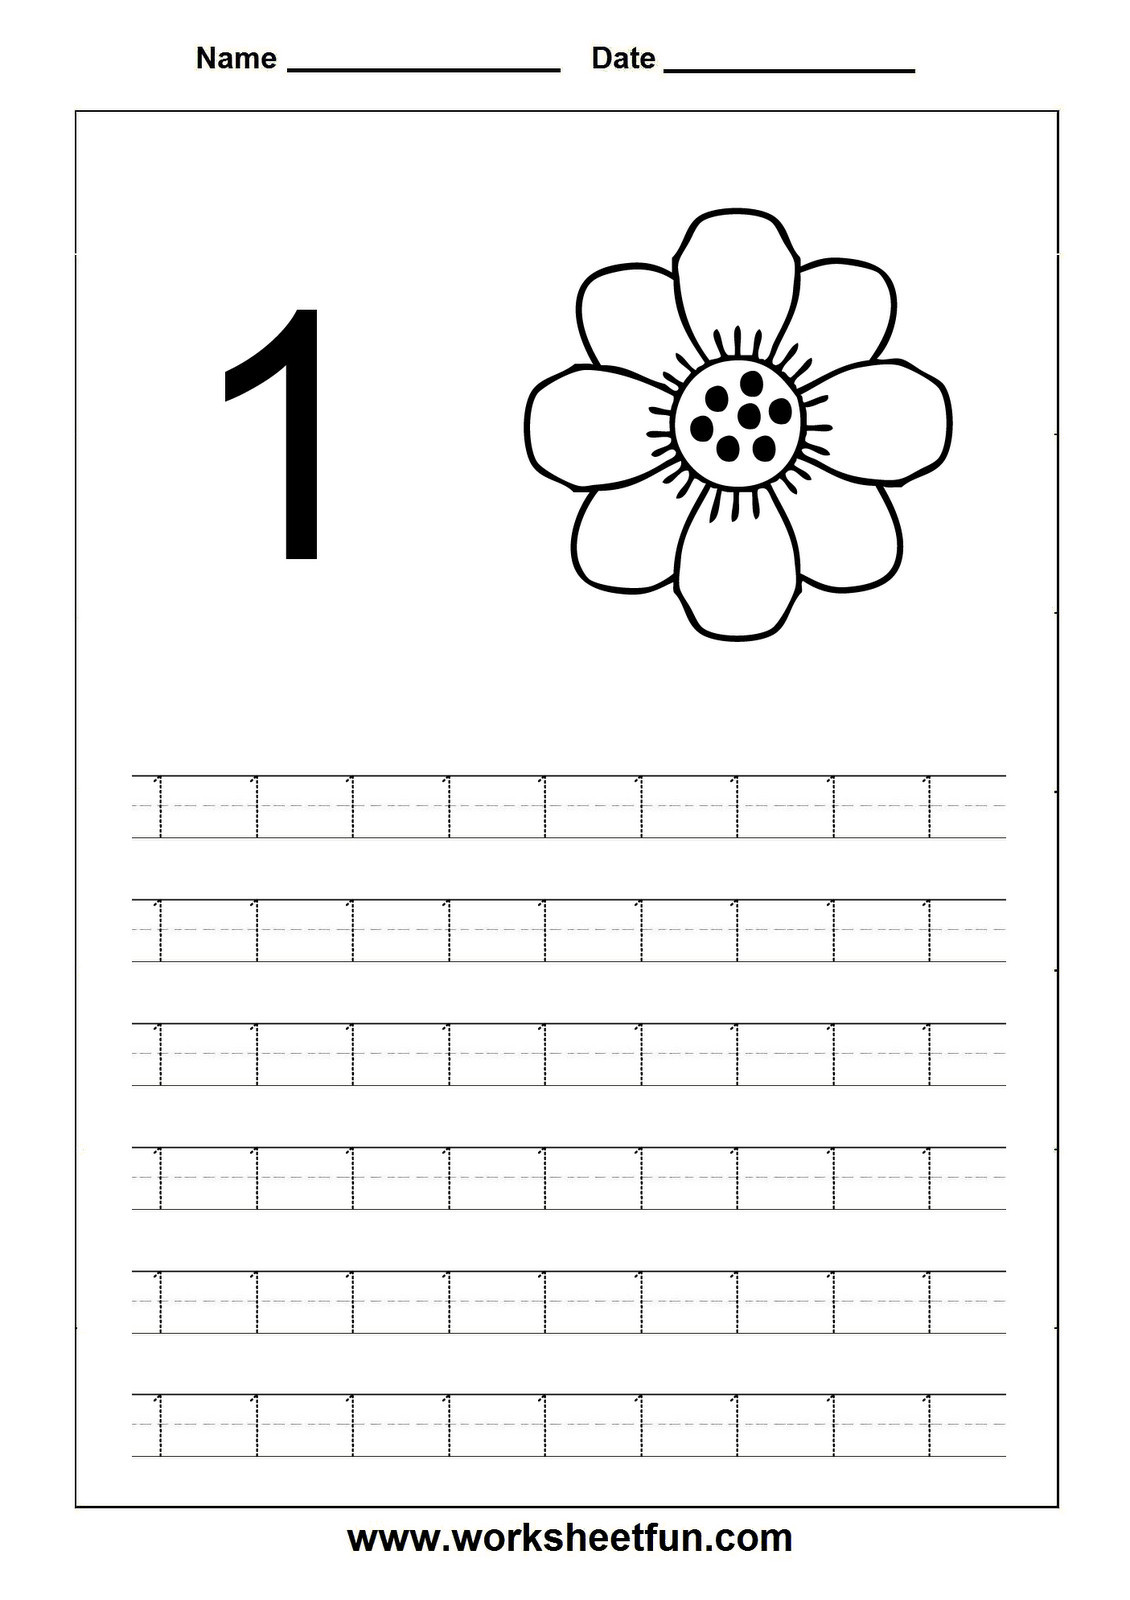 30 Tracing Number Worksheets 1 20